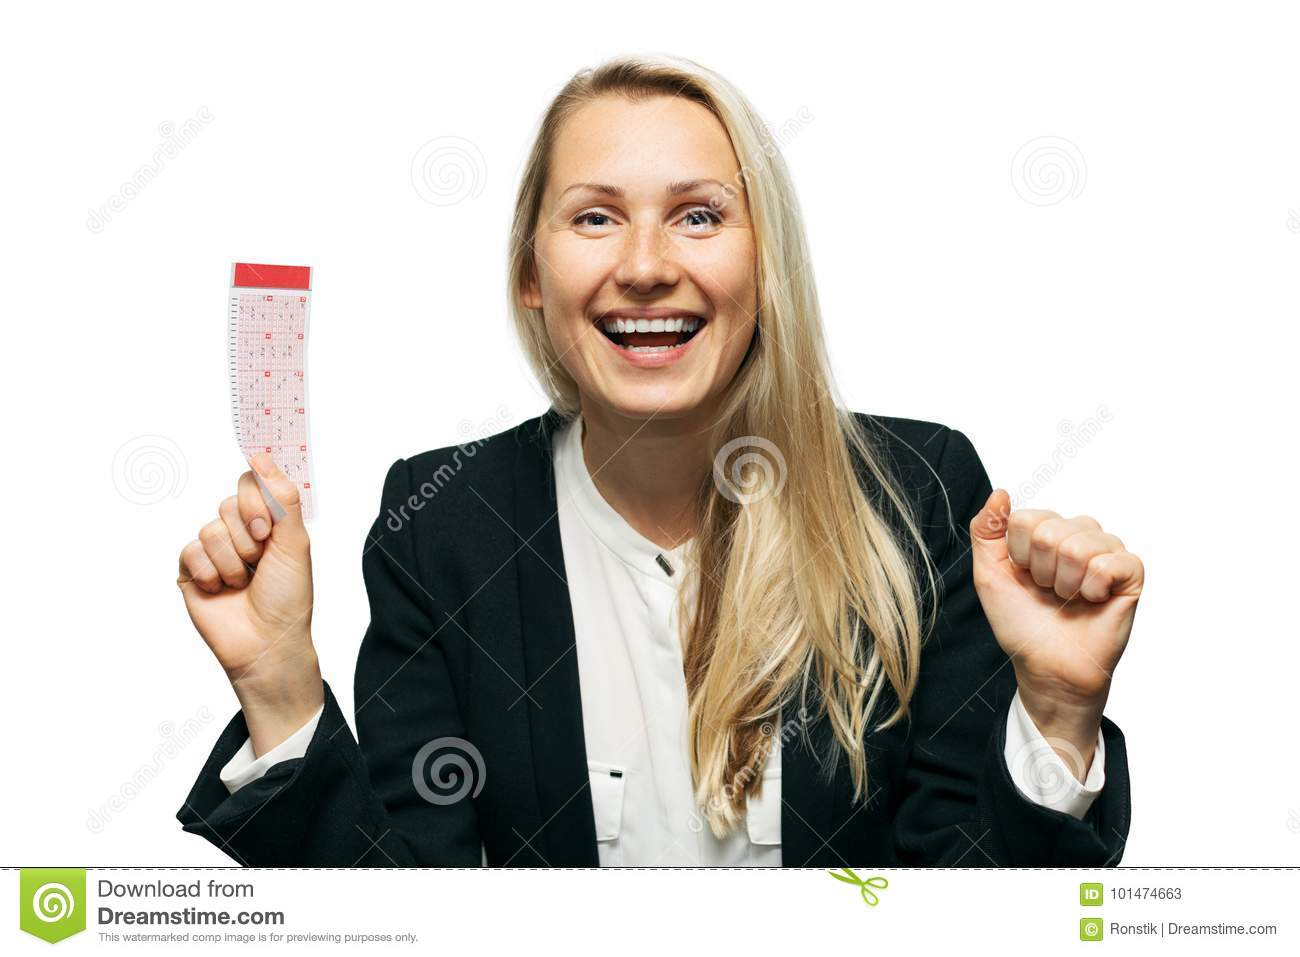 Download Happy Woman With Lucky Lottery Ticket In Hand Stock Image - Image of hand, game: 101474663